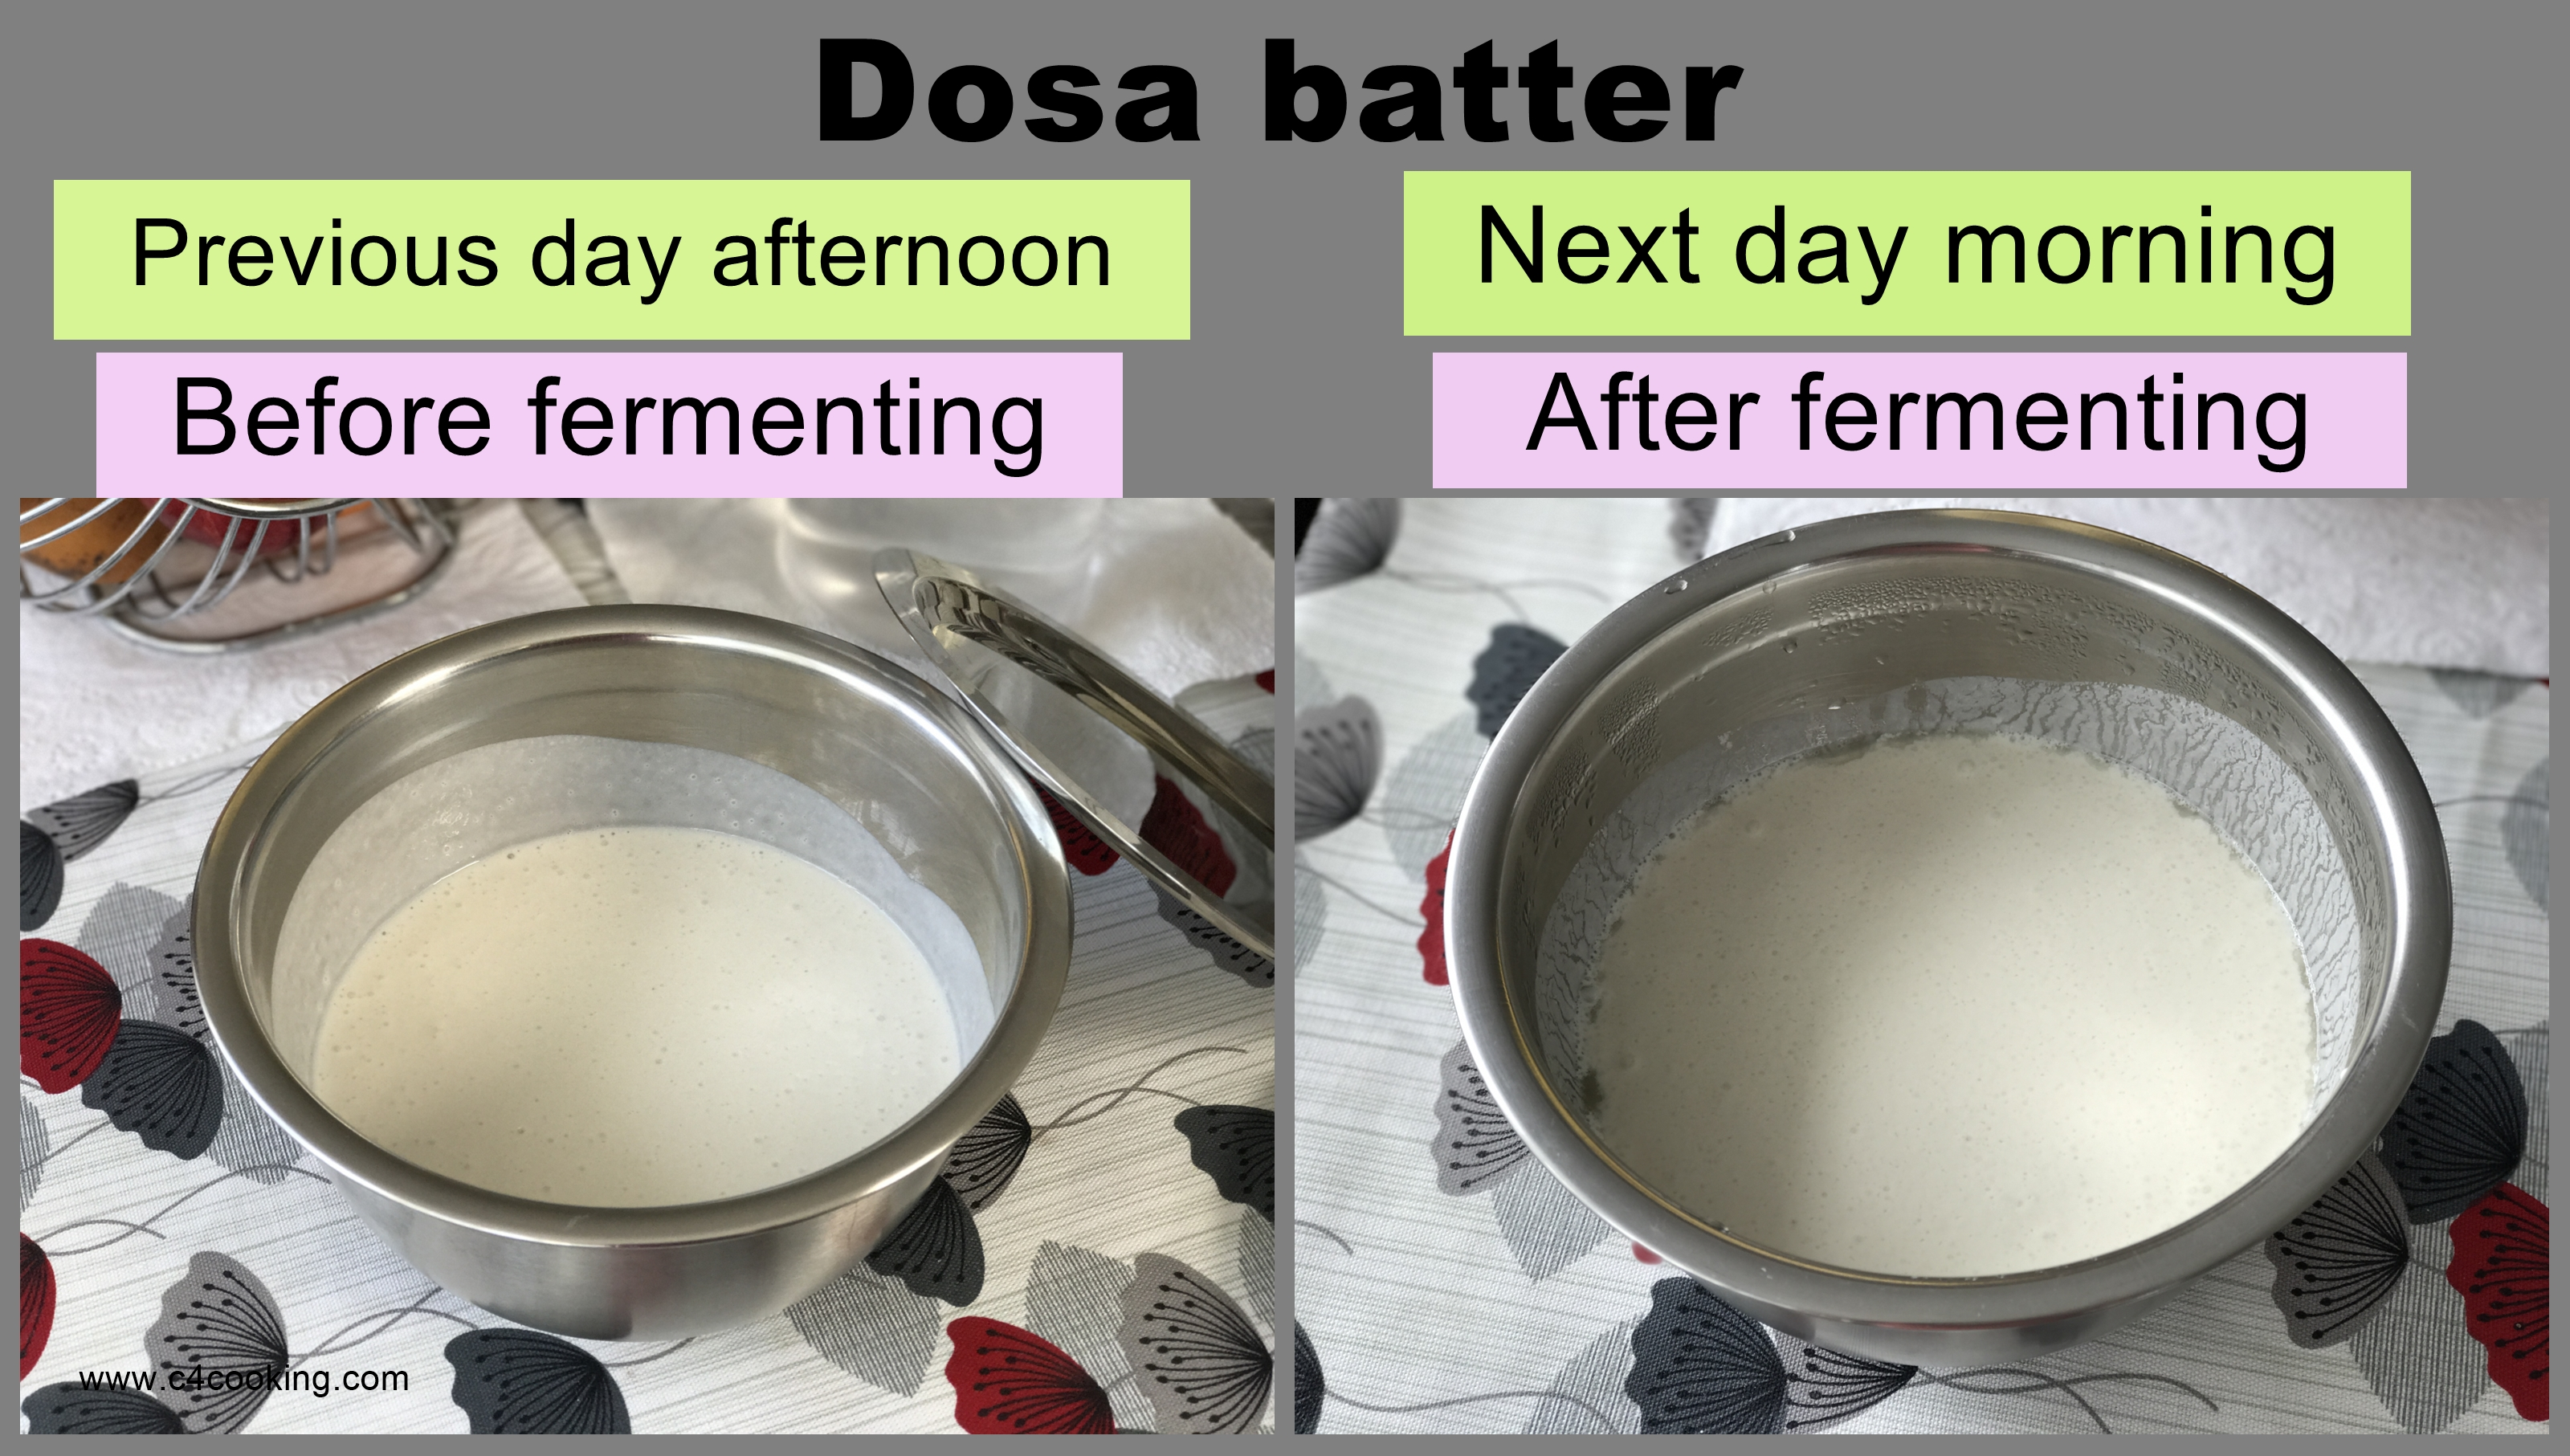 Dosa batter recipe, dosa batter image, dosa batter fermenting time, perfect dosa batter